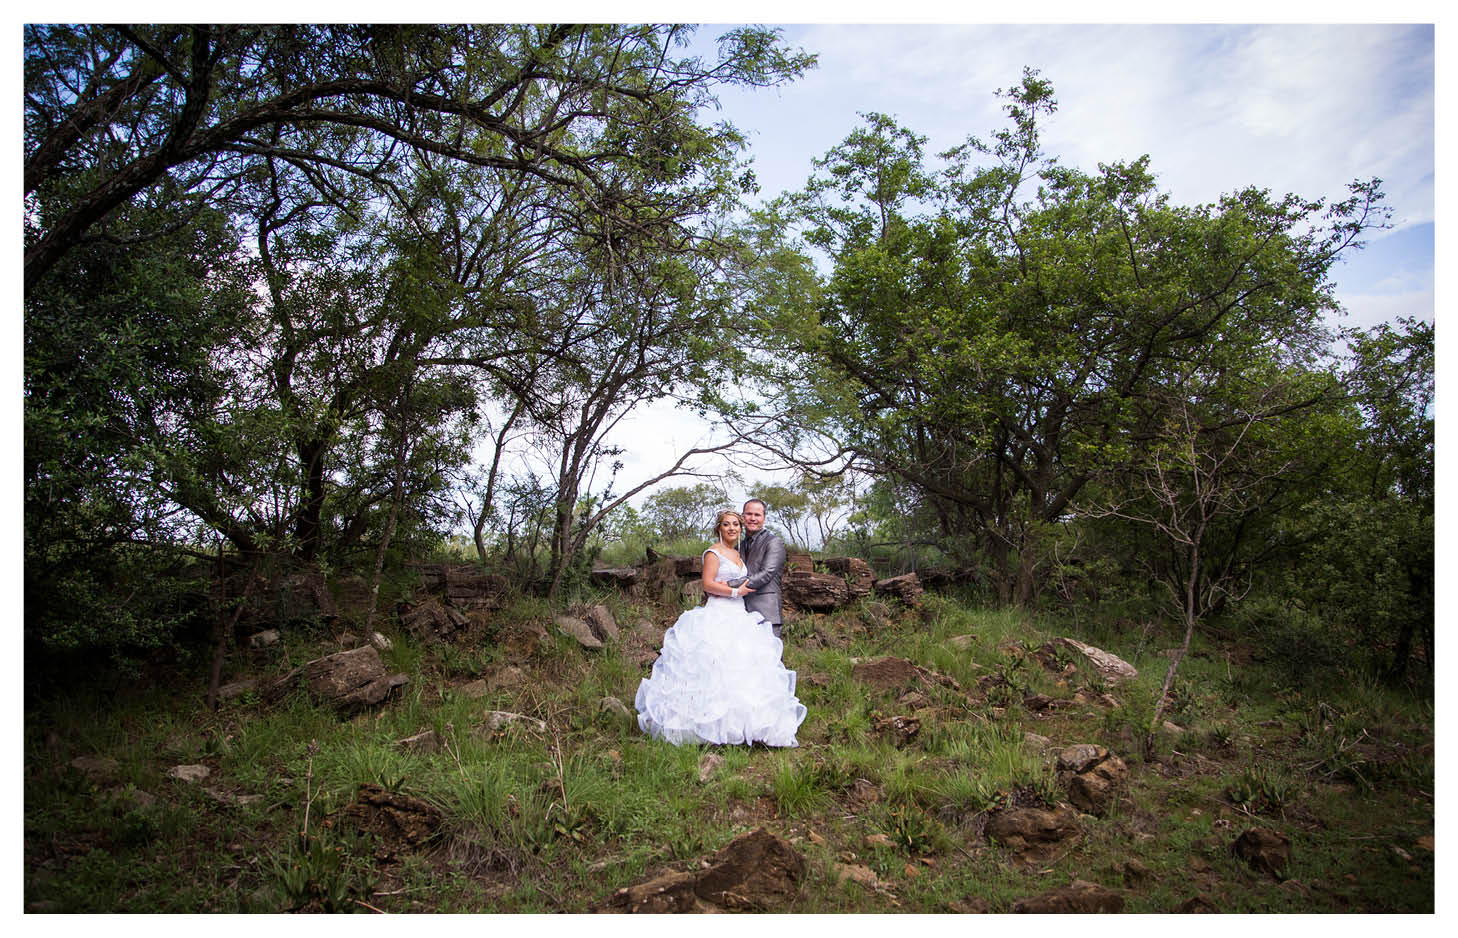 bride and groom on the rocks with blue sky and trees in background at La WiiDA Lodge